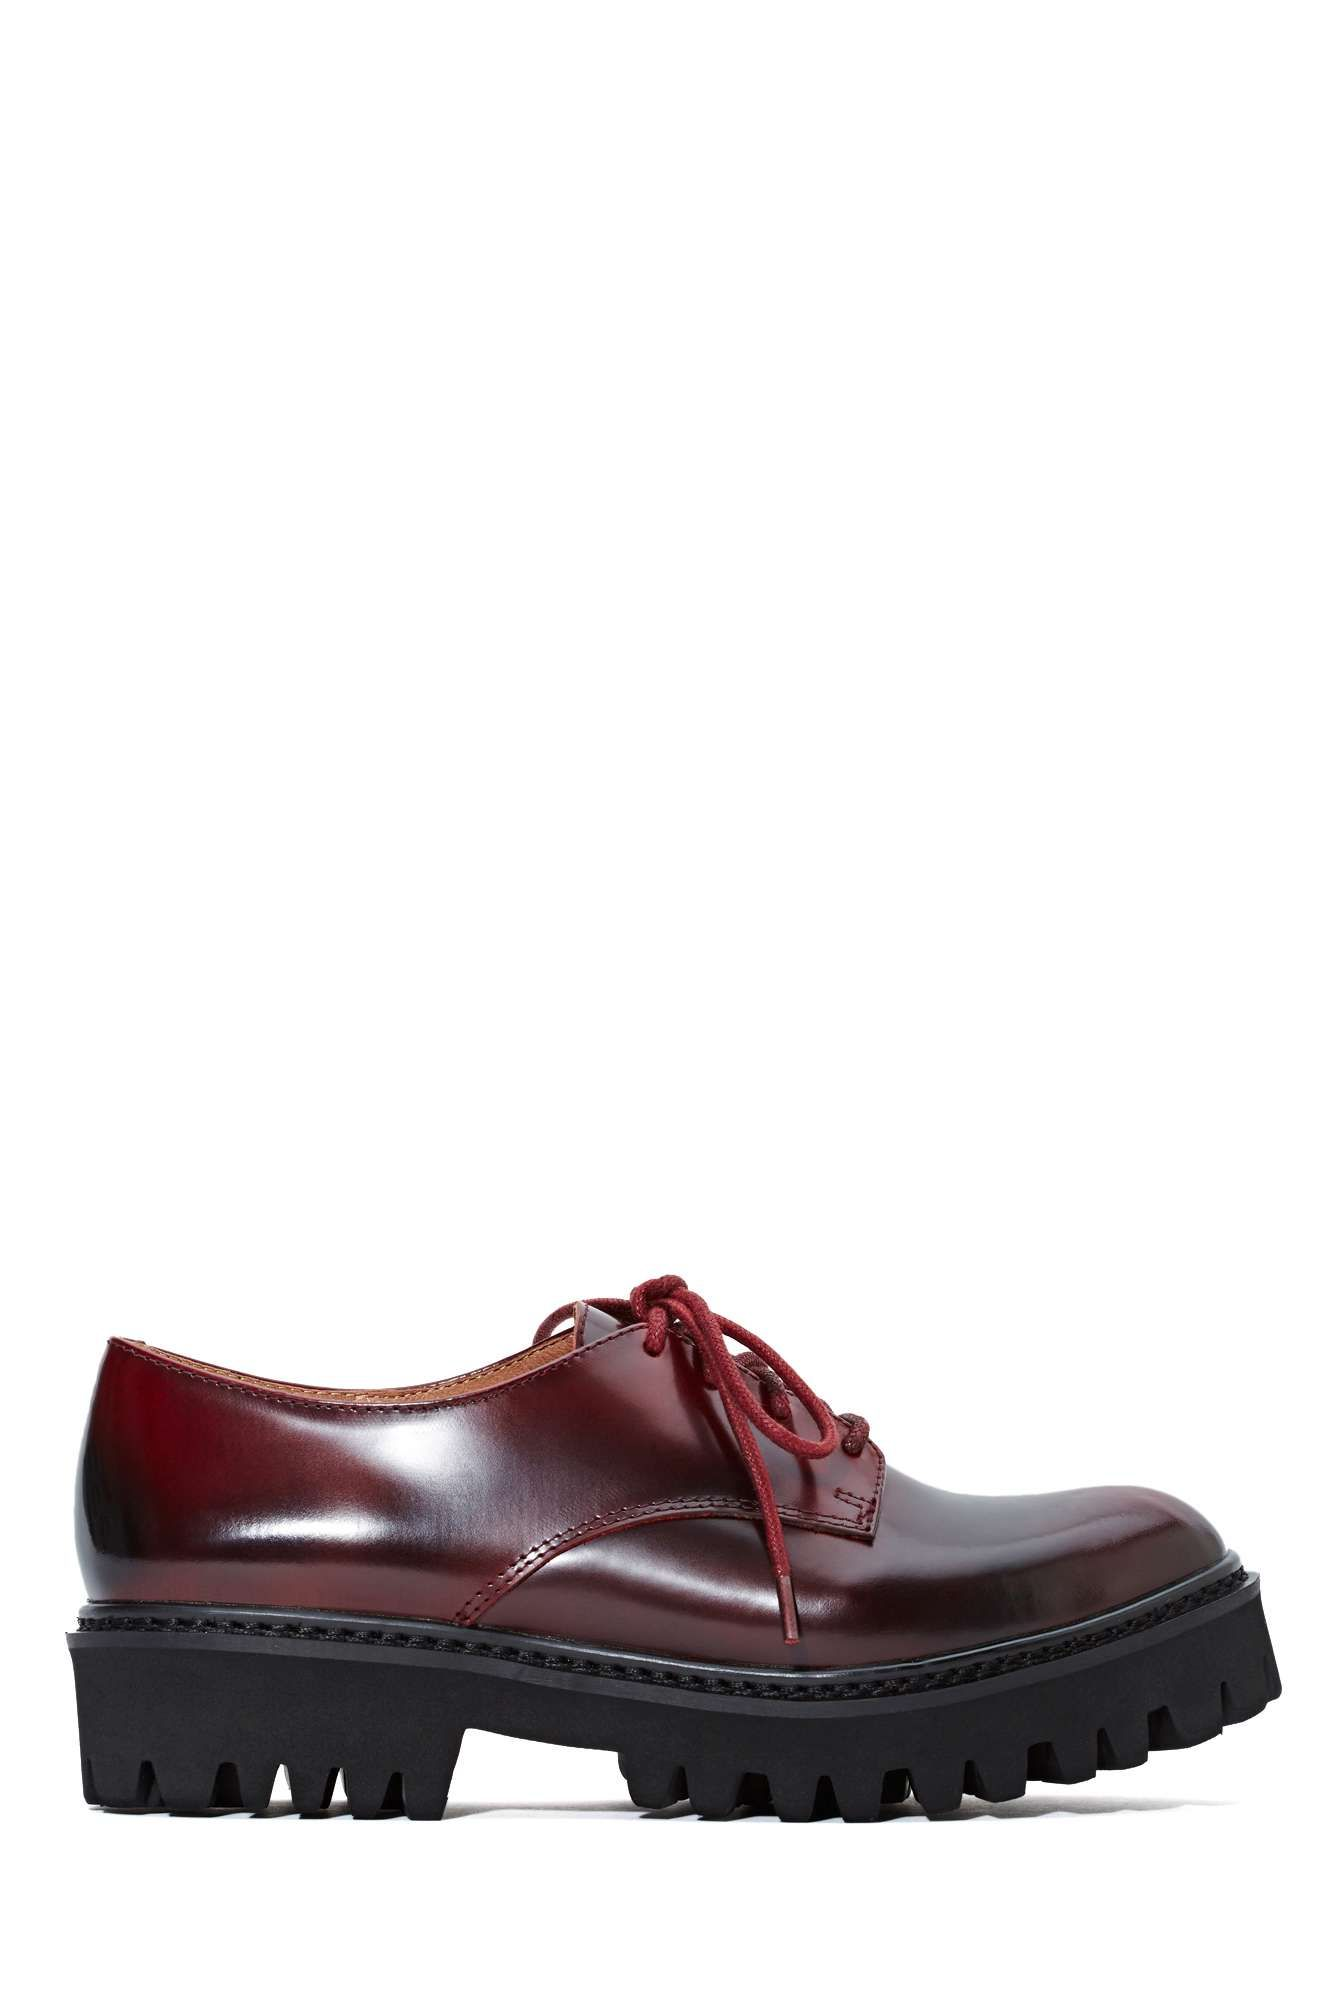 Jeffrey Campbell Pistol Leather Oxford - Wine